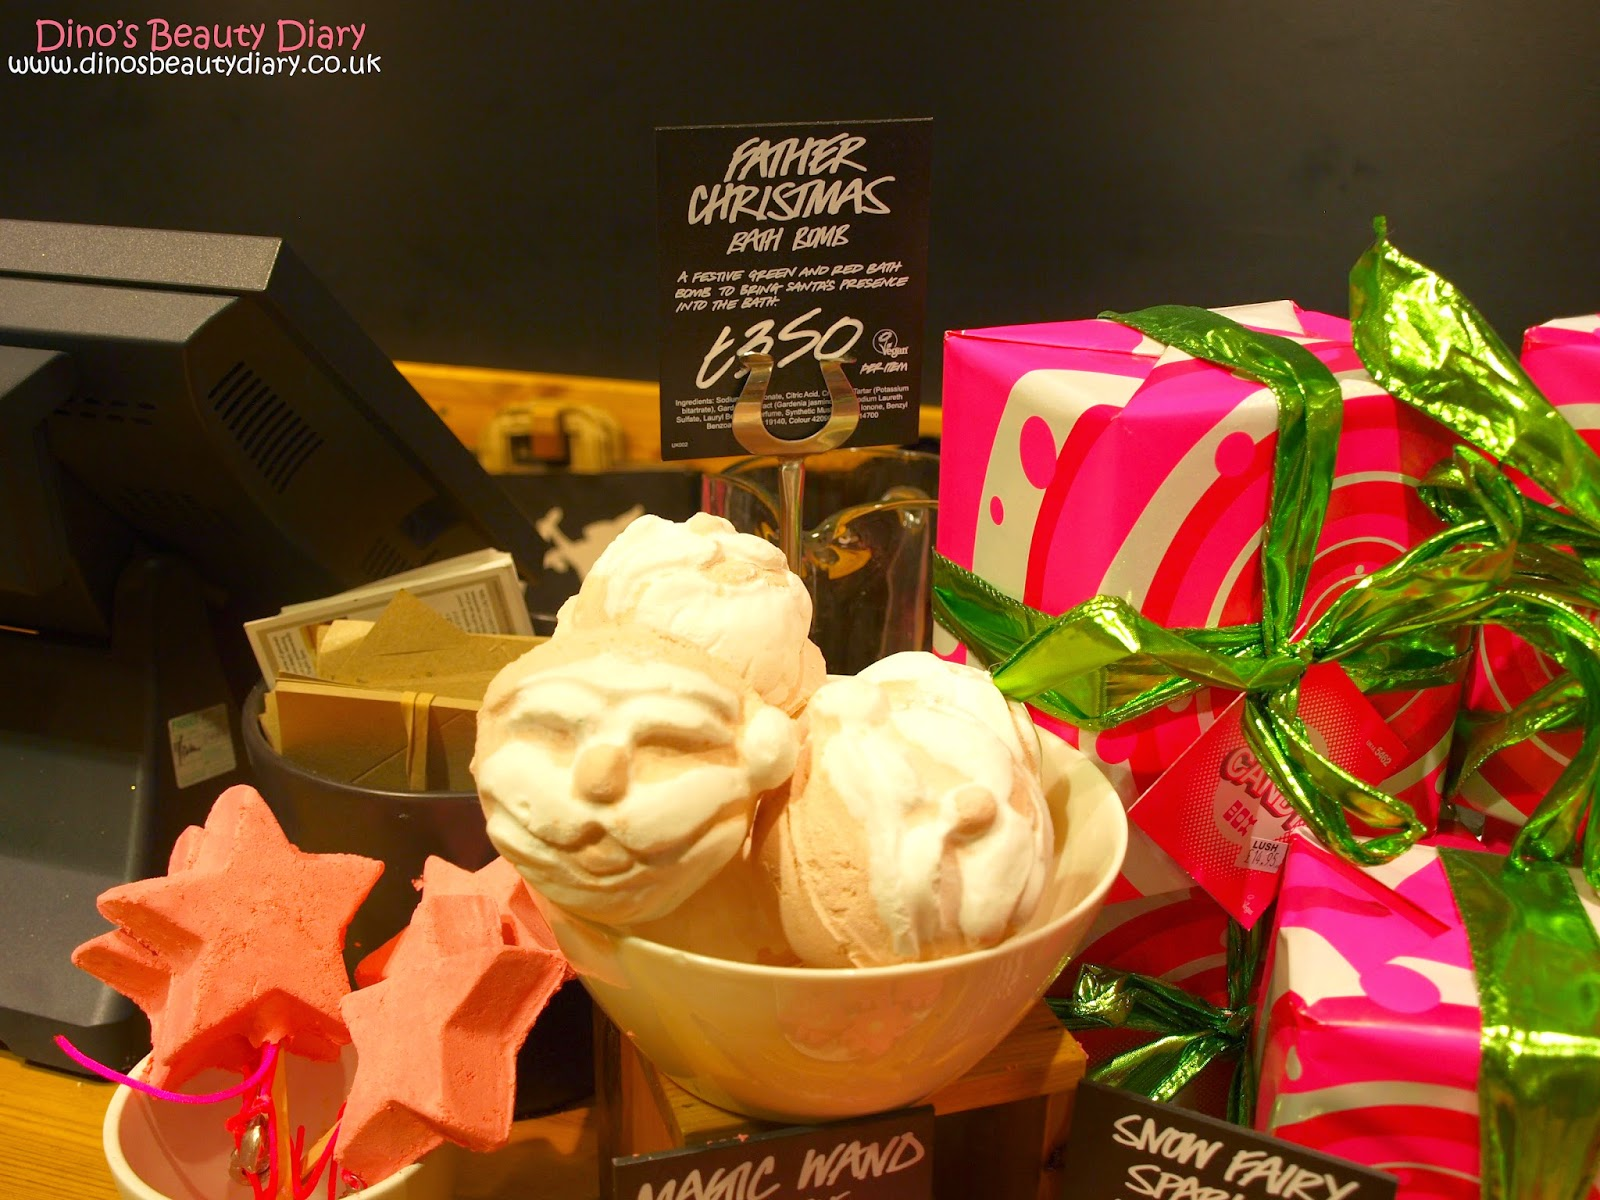 Dino's Beauty Diary - Lush Nottingham Bloggers Event - father christmas bath bombs